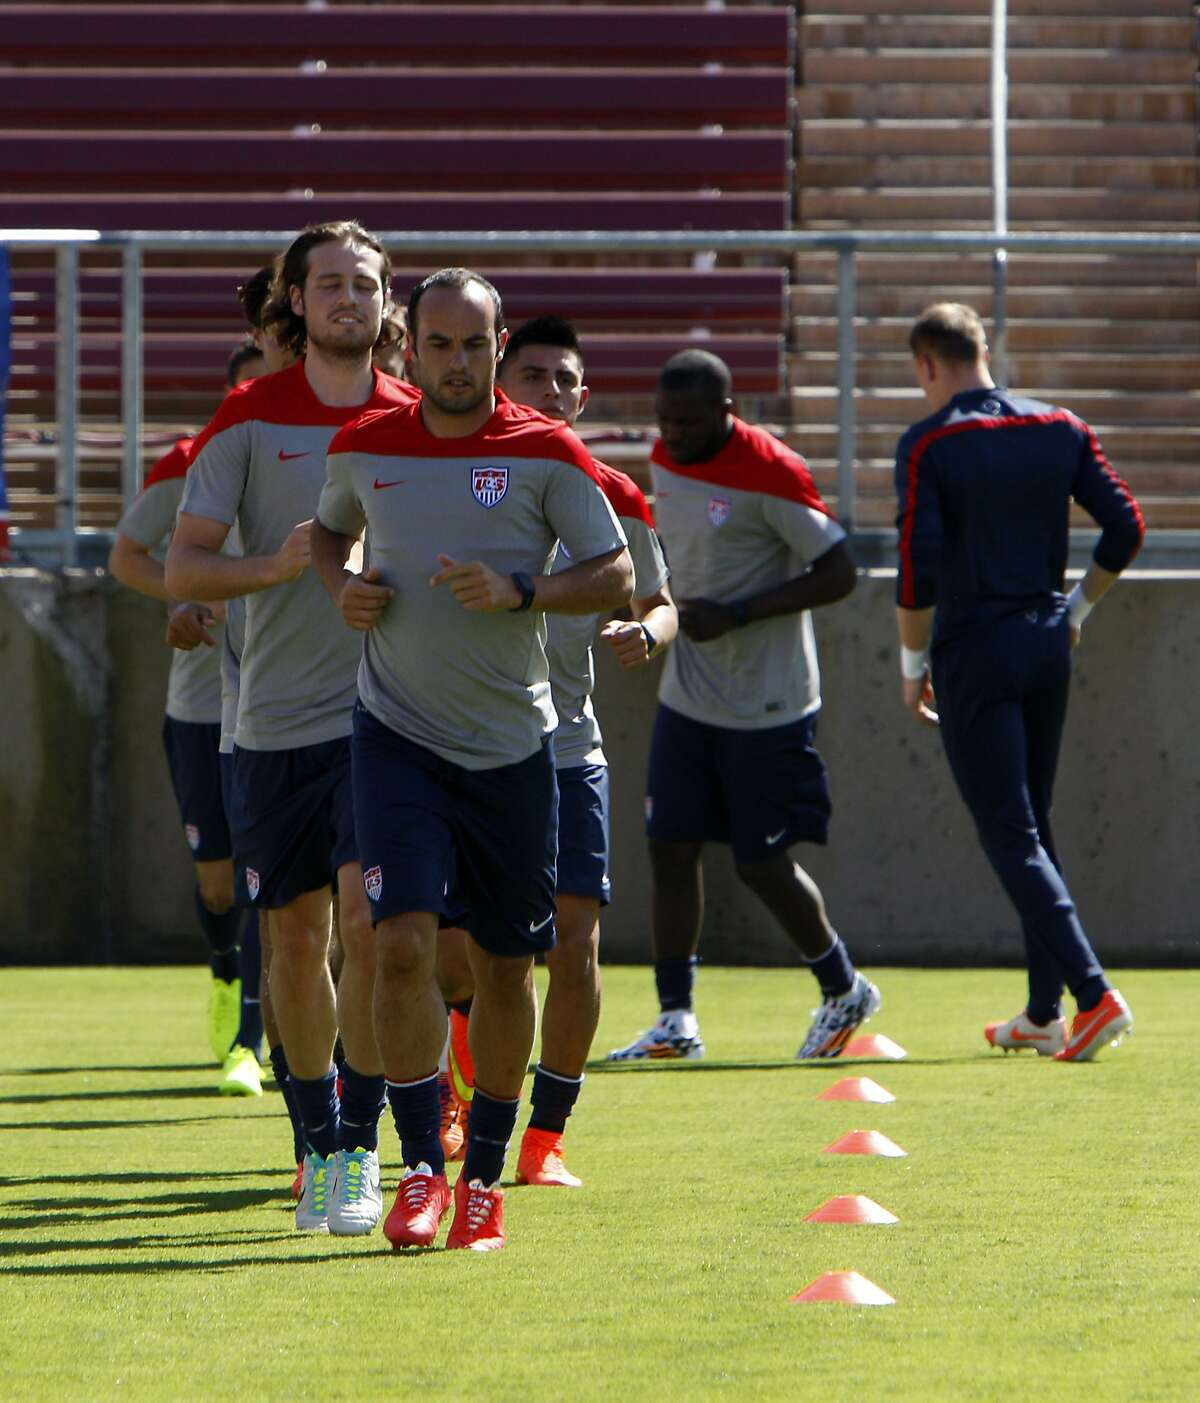 Landon Donovan leads members of the US Men's National Soccer team in drills at Stanford Stadium on Wednesday. The team was introduced during an exhibition practice at Stanford University in Stanford, Calif., on Wednesday, May 14, 2014.